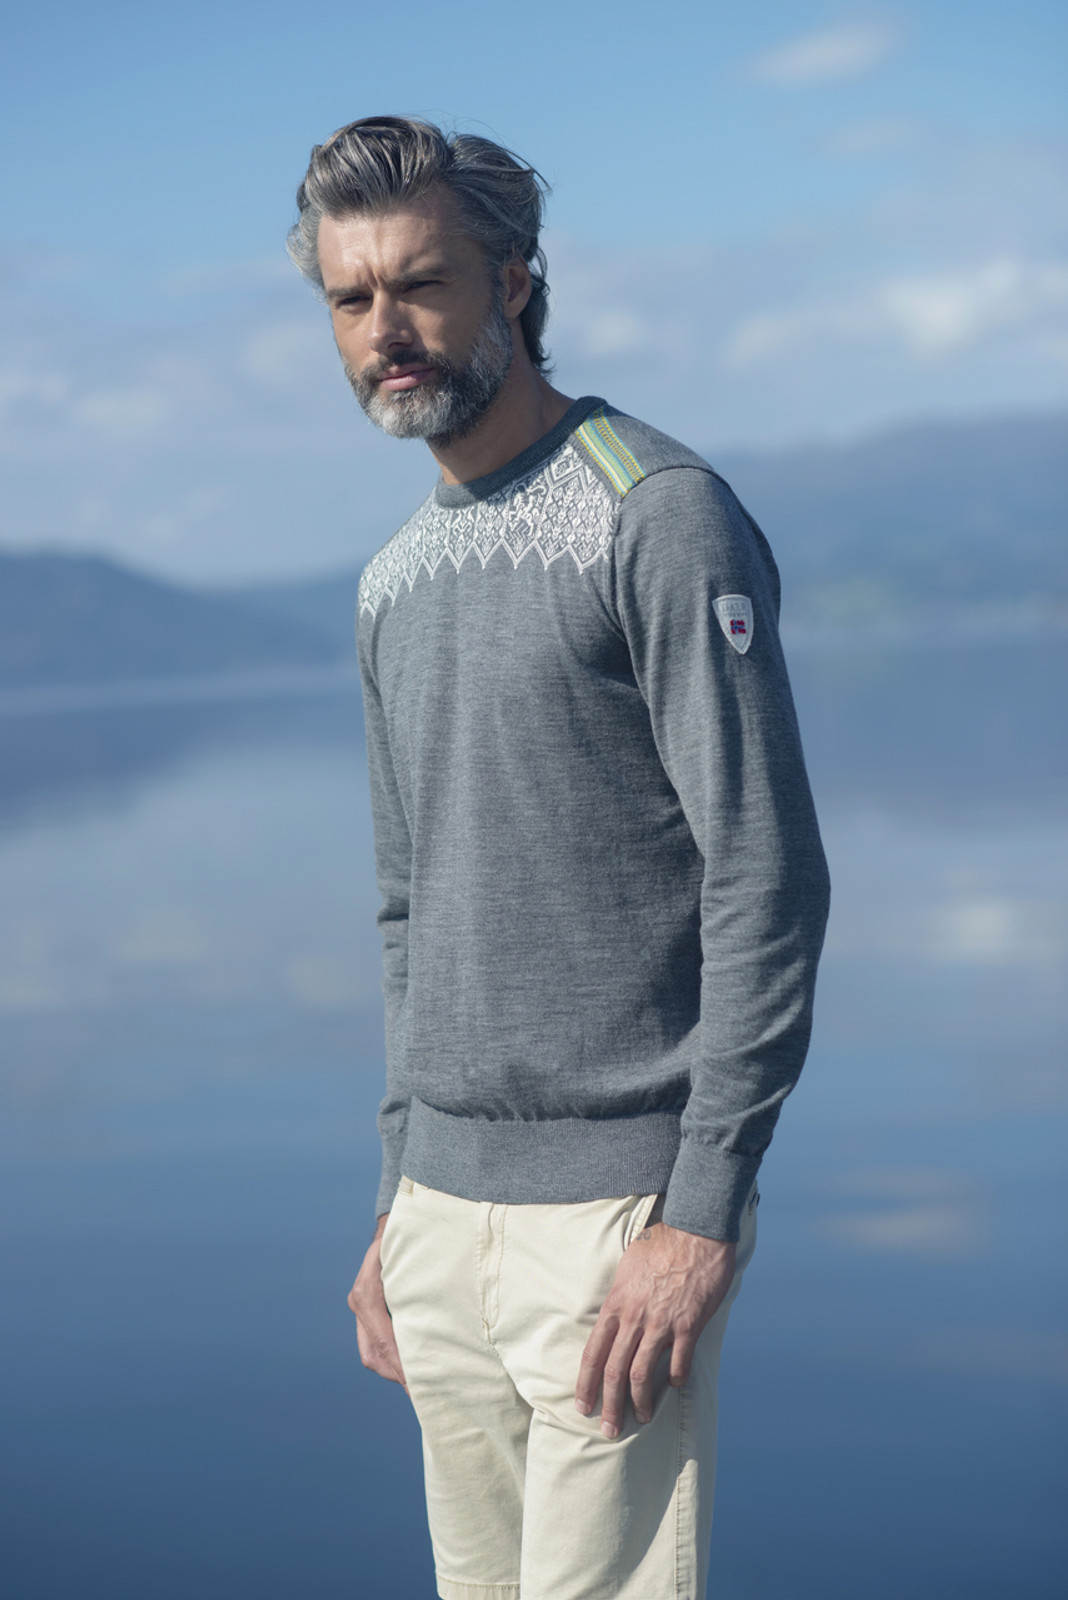 Man wearing Dale of Norway Men's Lillehammer Sweater in Smoke/Off White/Arctic Blue/Turquoise, 93271-E